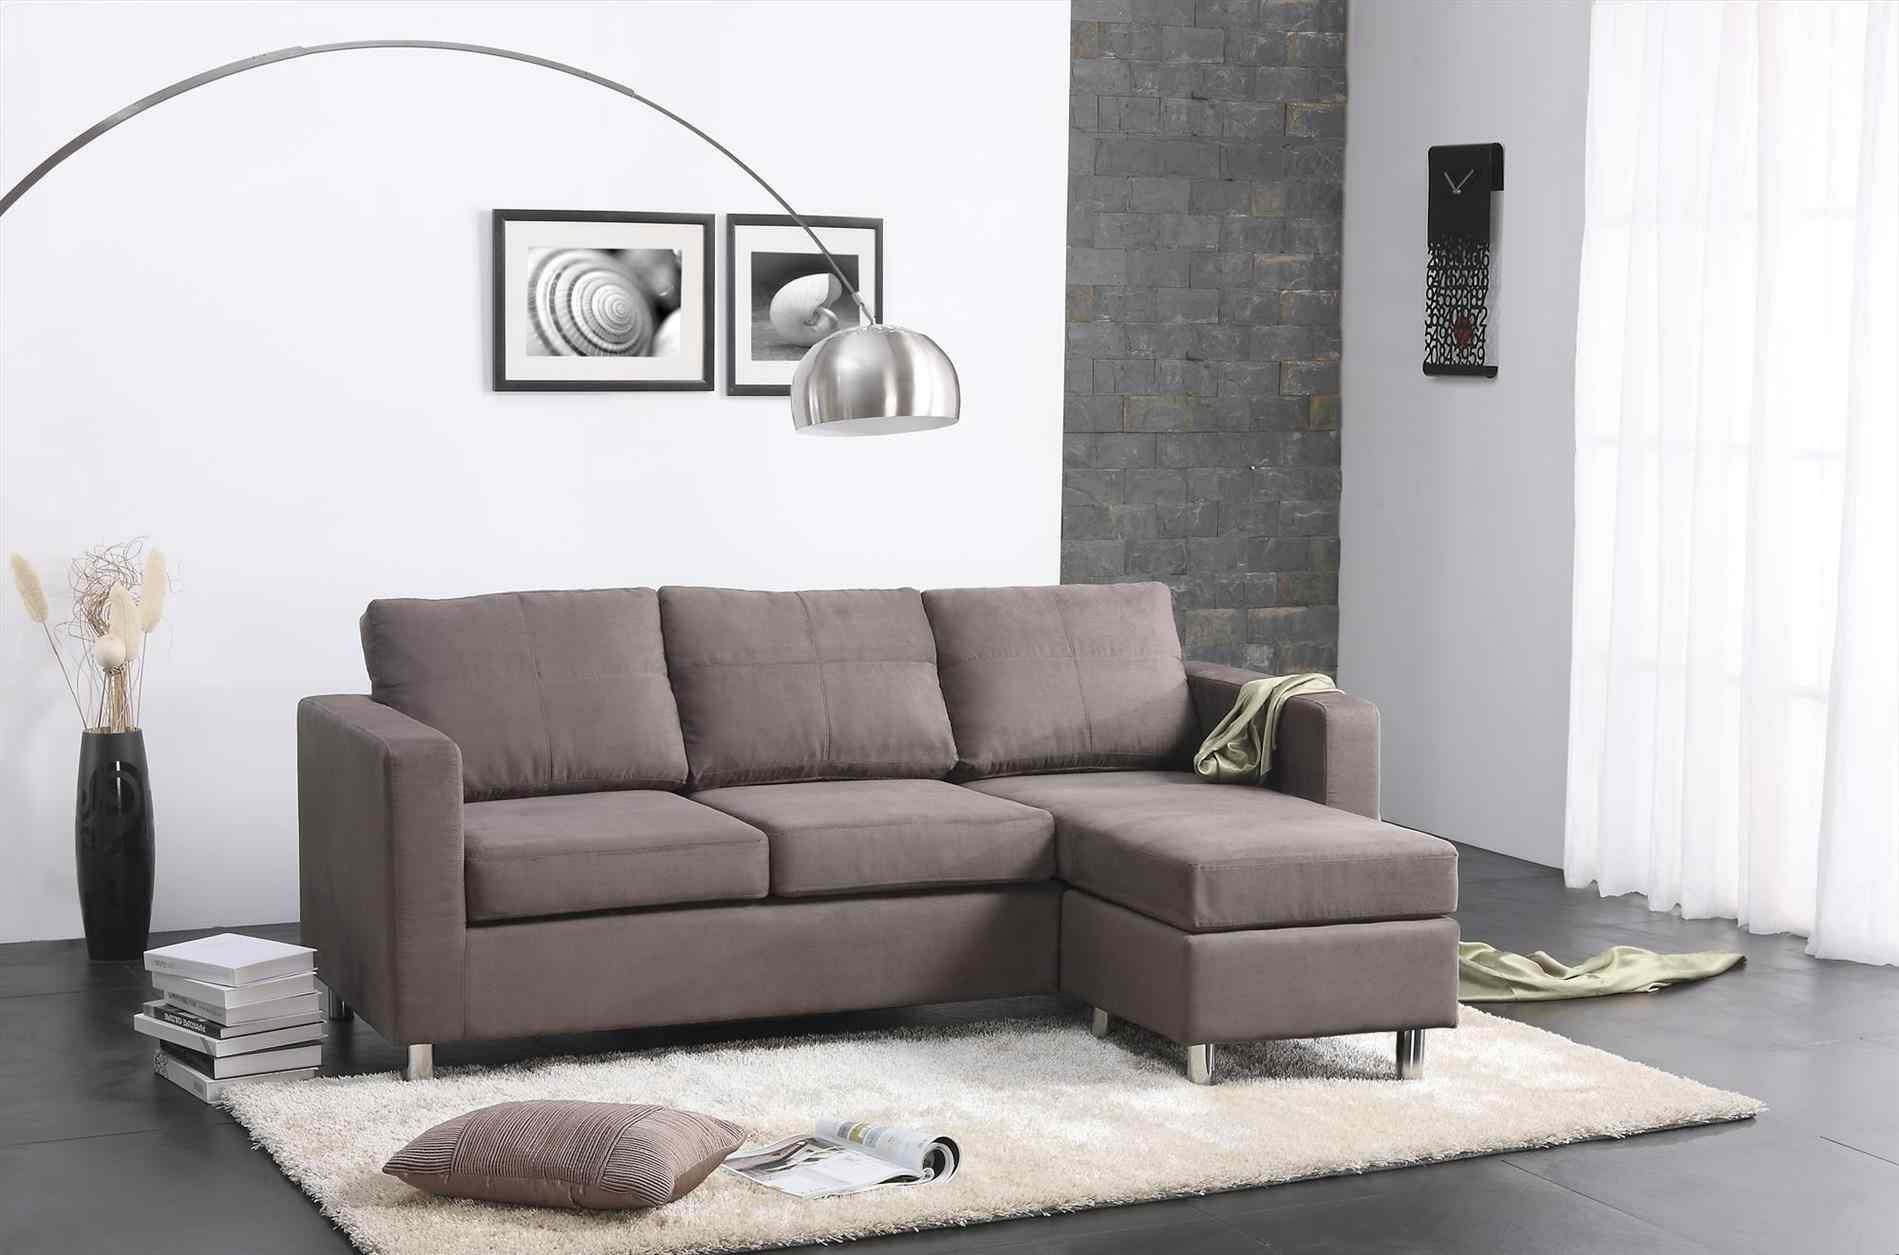 Exceptionnel Spaces Sofa Walmart Studio Living Room Elegant With Recliners Elegant Inexpensive  Sectional Sofas For Small Spaces